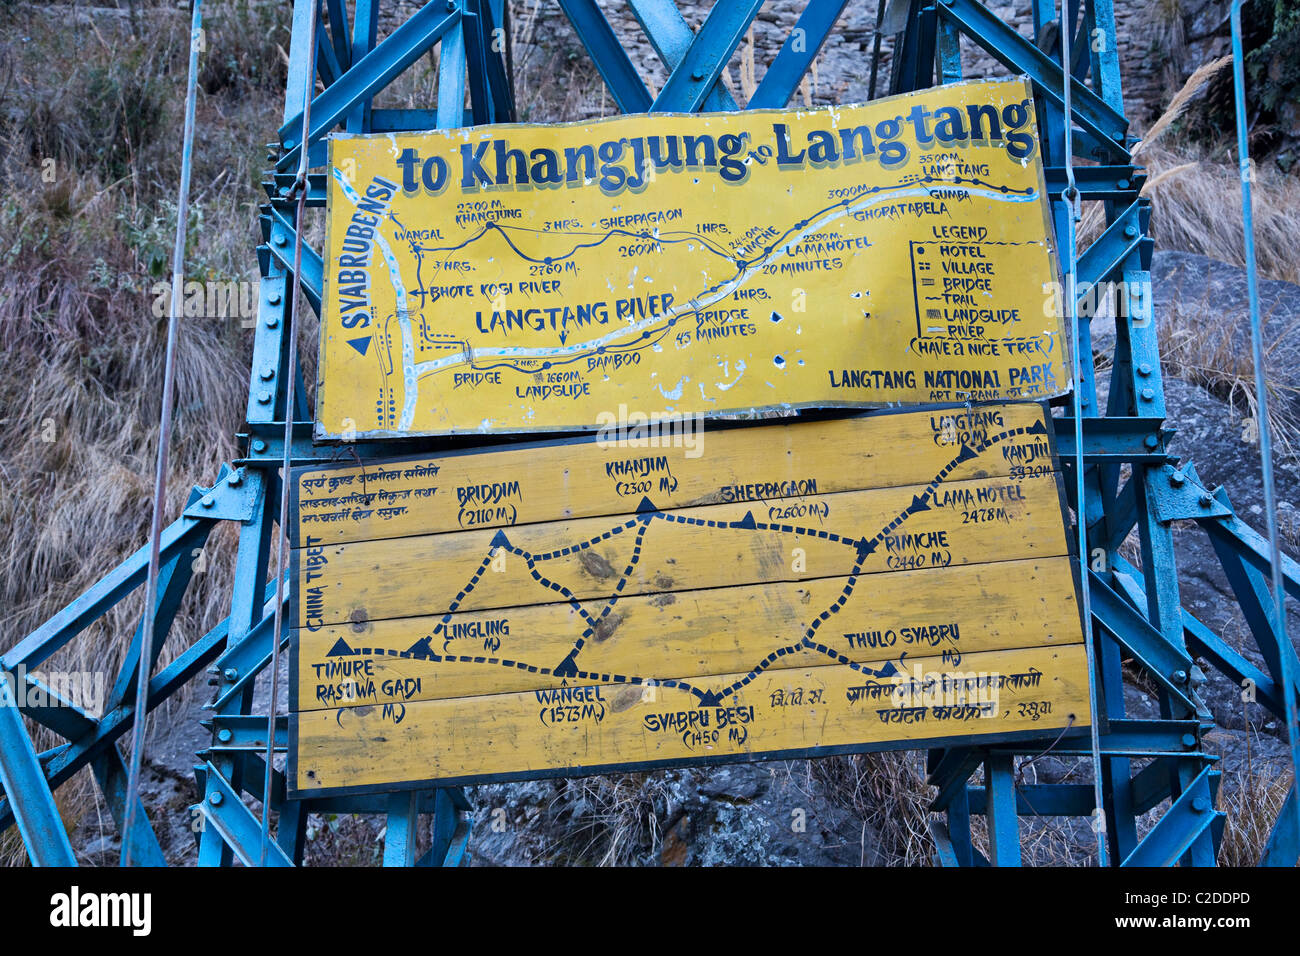 Indication for the Langtang trekking. Himalayan Nepal. Asia - Stock Image